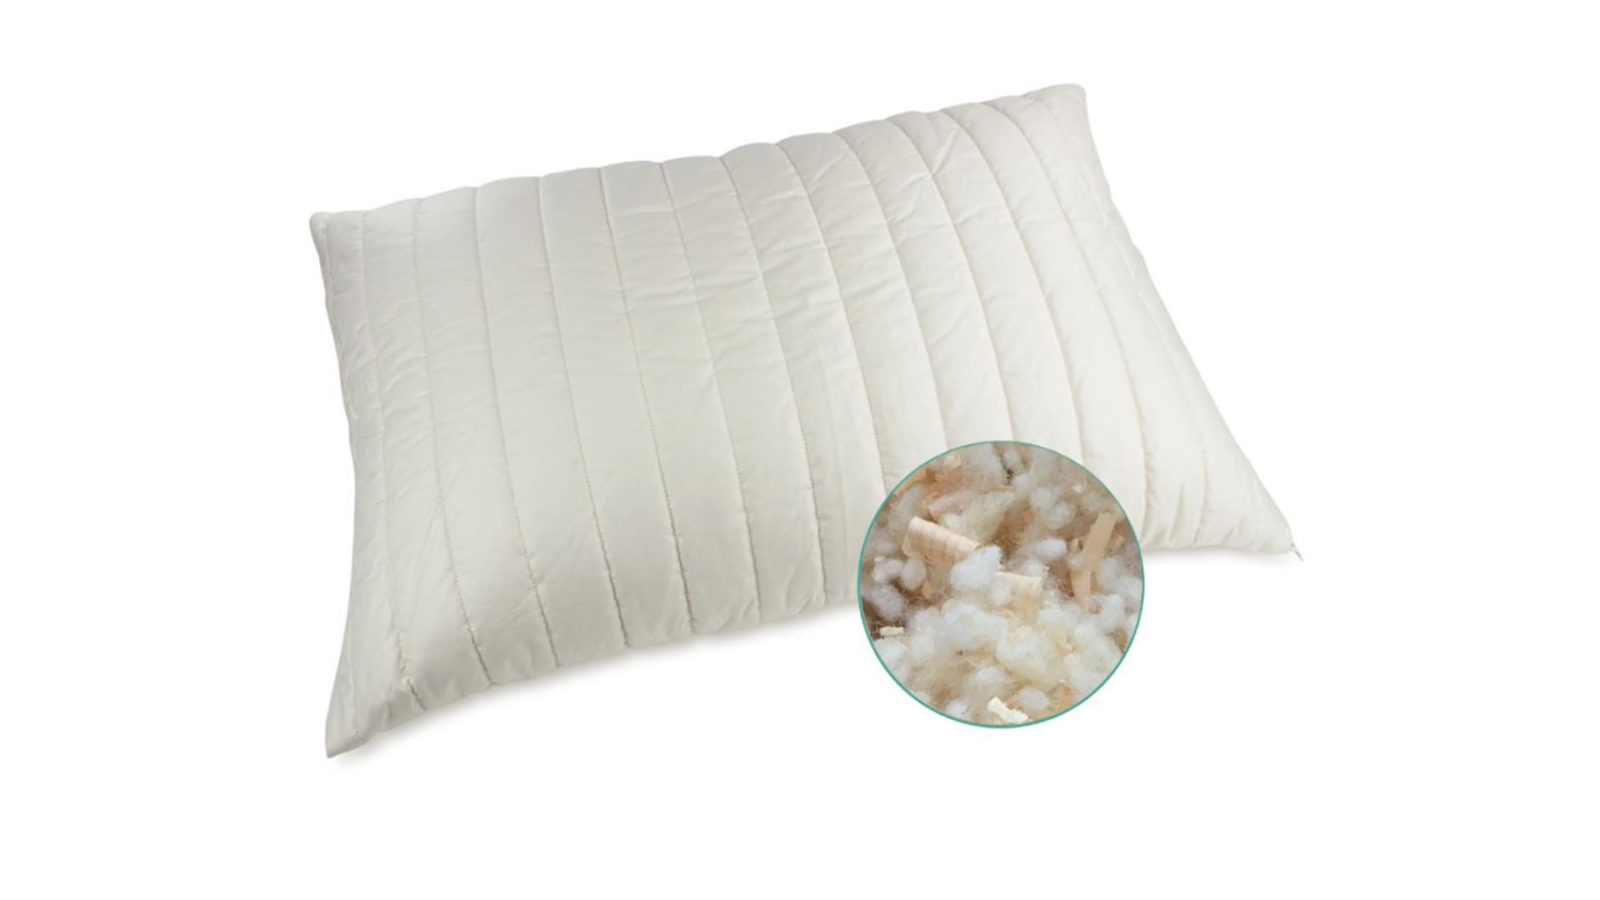 organic cotton pillow filled with organic wool and soothing Pine shavings